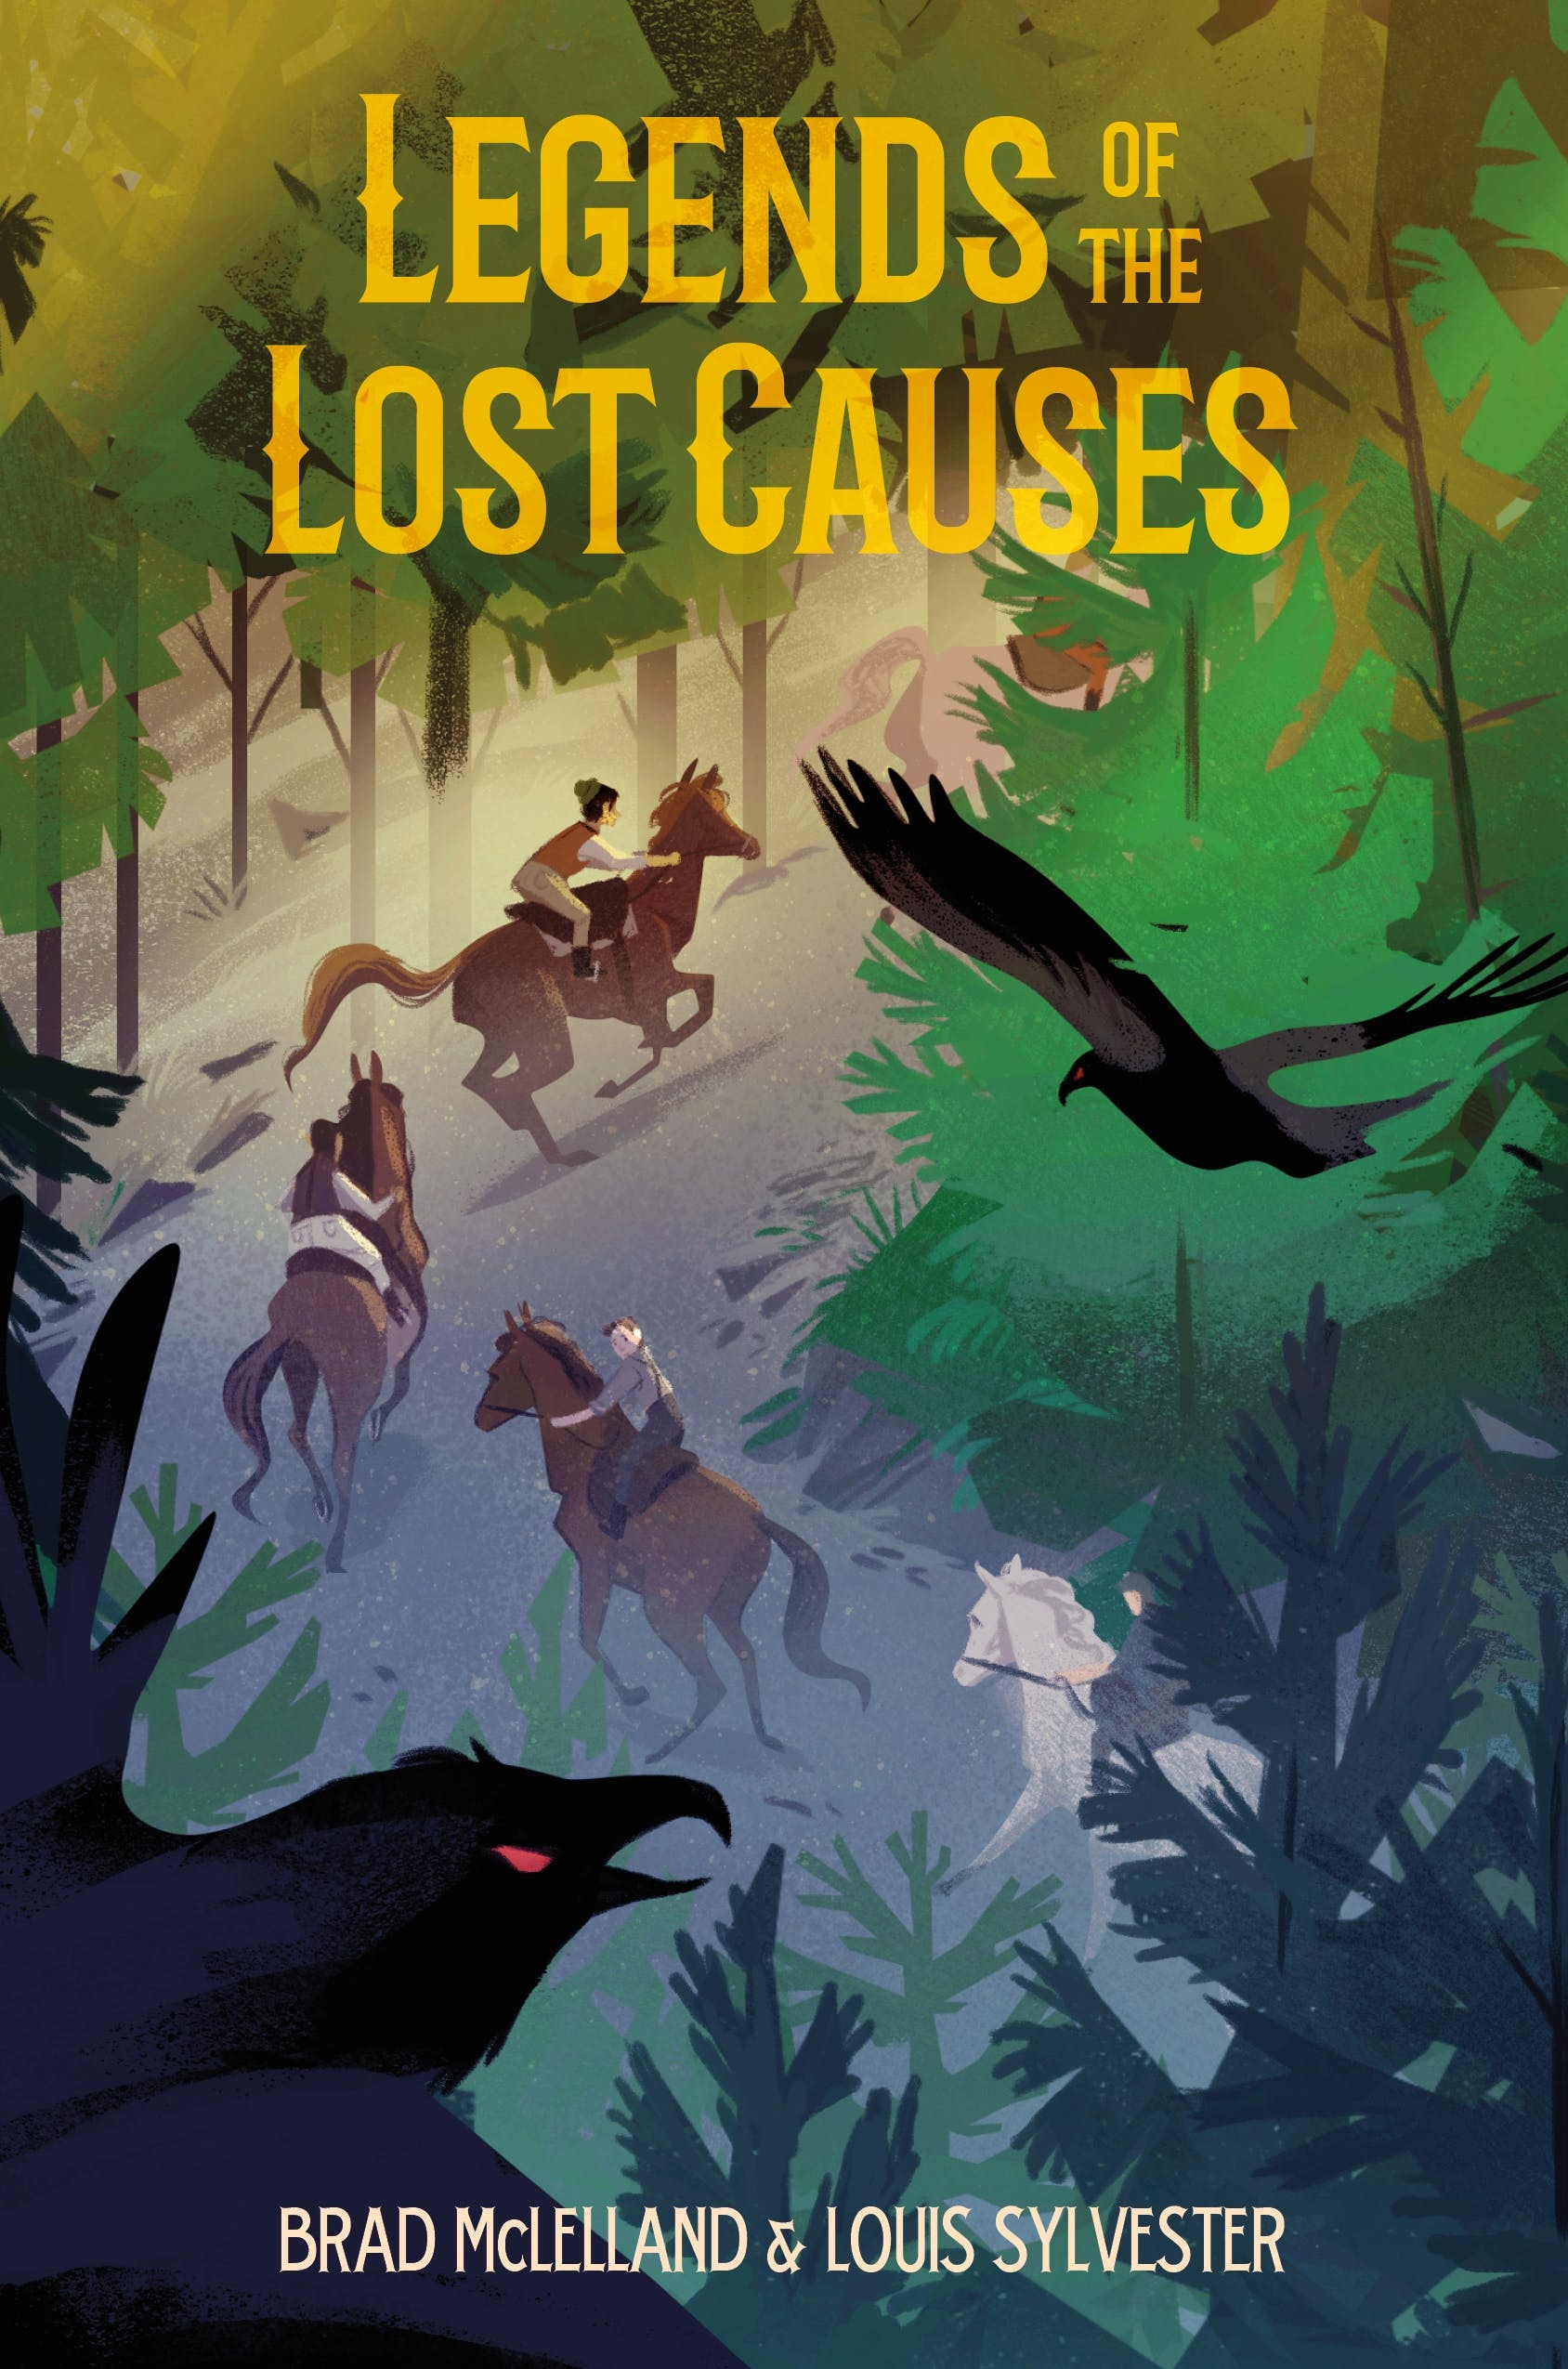 Image of Legends of the Lost Causes